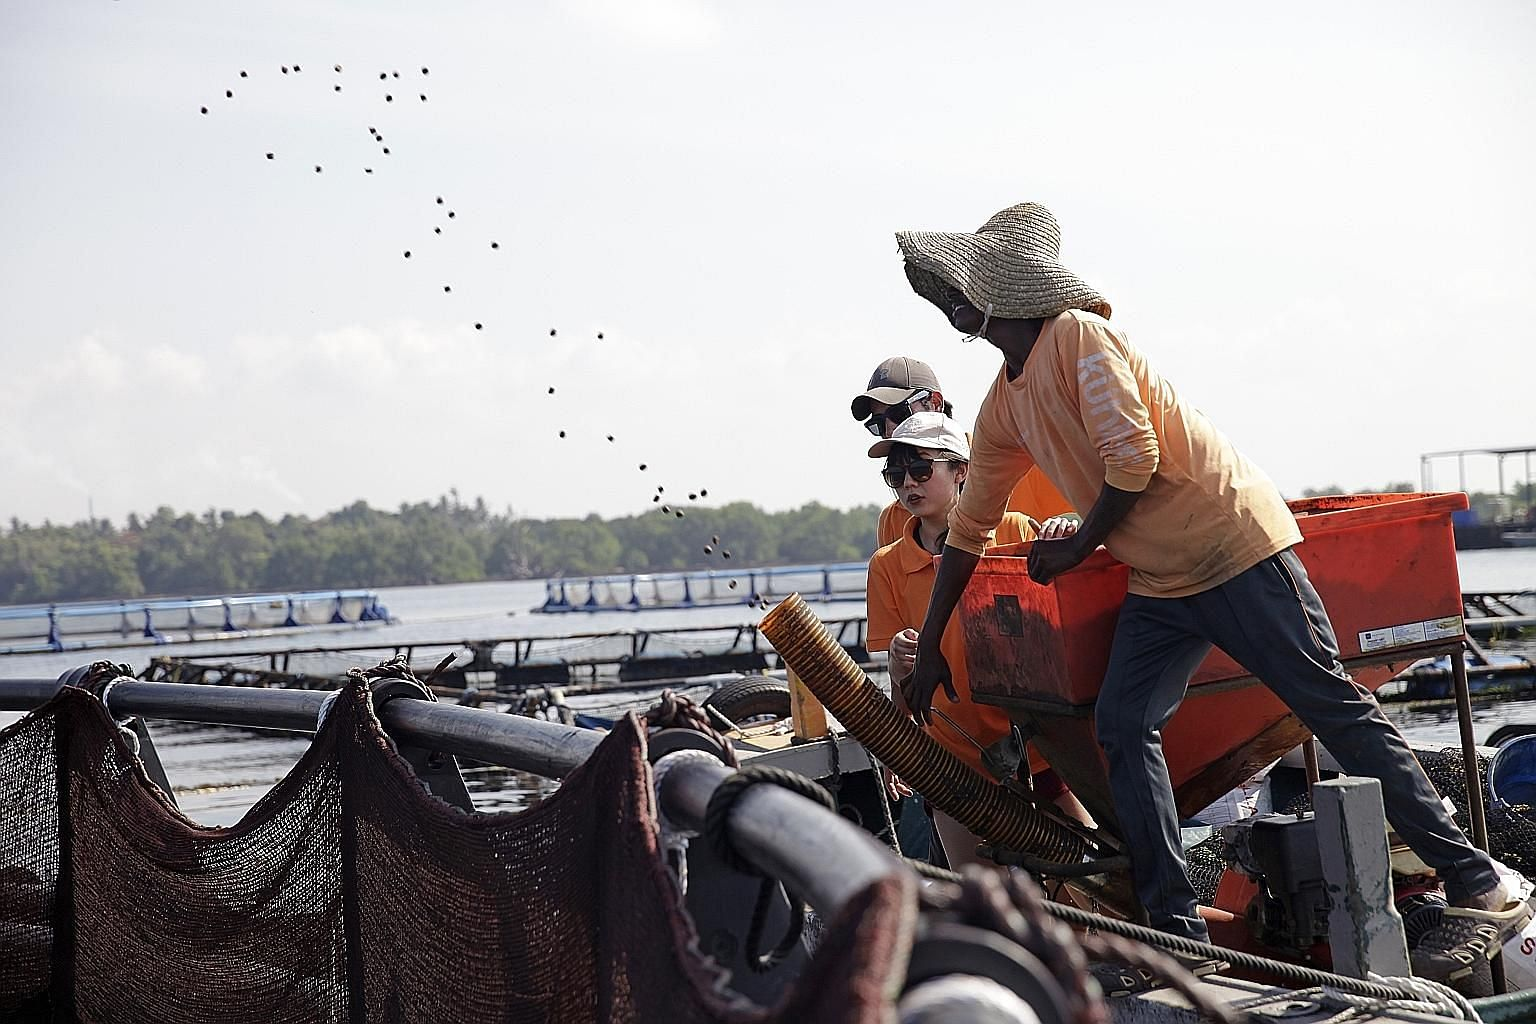 Straits Times journalist Audrey Tan, farm manager Emmanuel de Braux (behind her) and a farm worker who uses a device to spray fish feed into the pens at Barramundi Asia's fish farm.